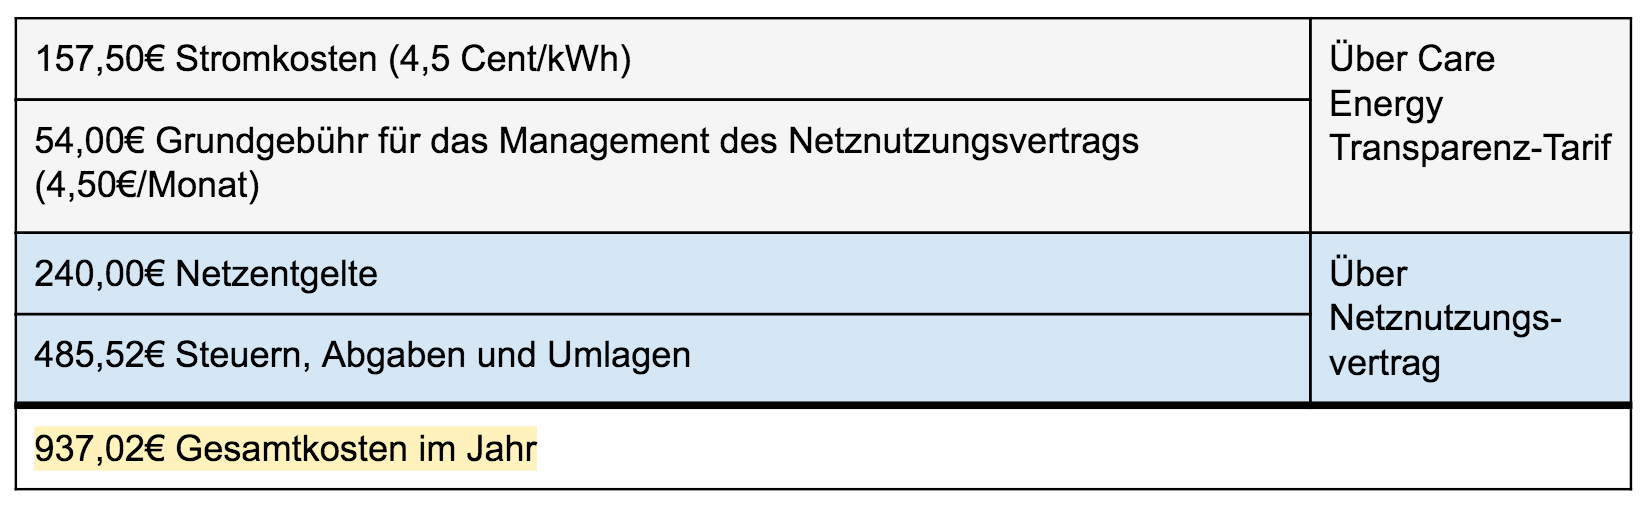 Care-Energy Transparenz-Tarif Rechnung